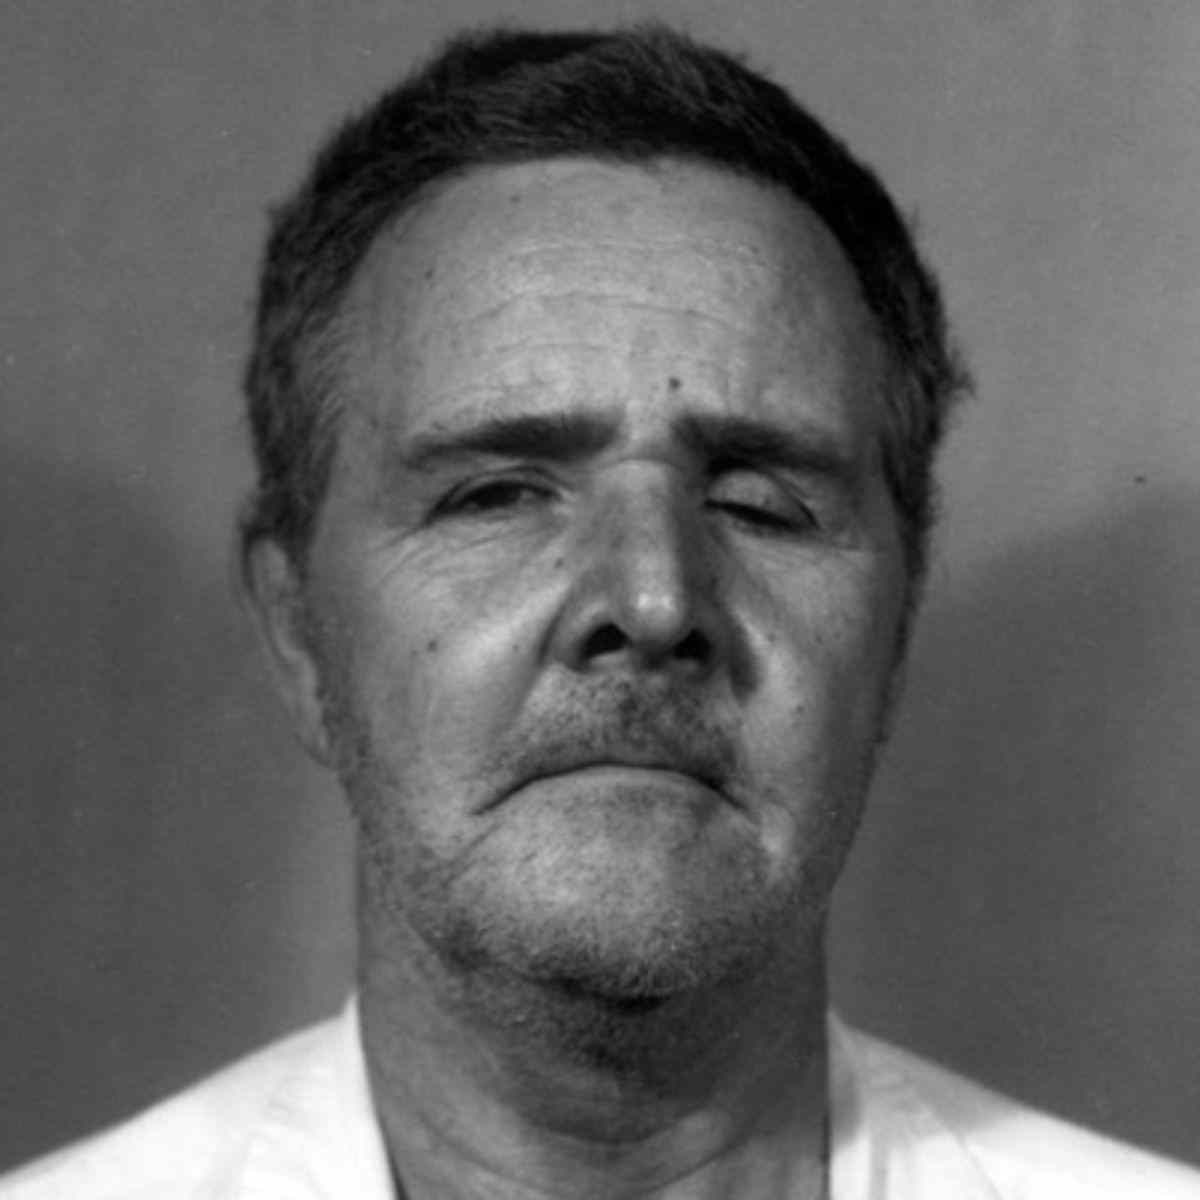 Glass eyed serial killer Mr Lucas who had found a killing acquaintance in Ottis Toole.